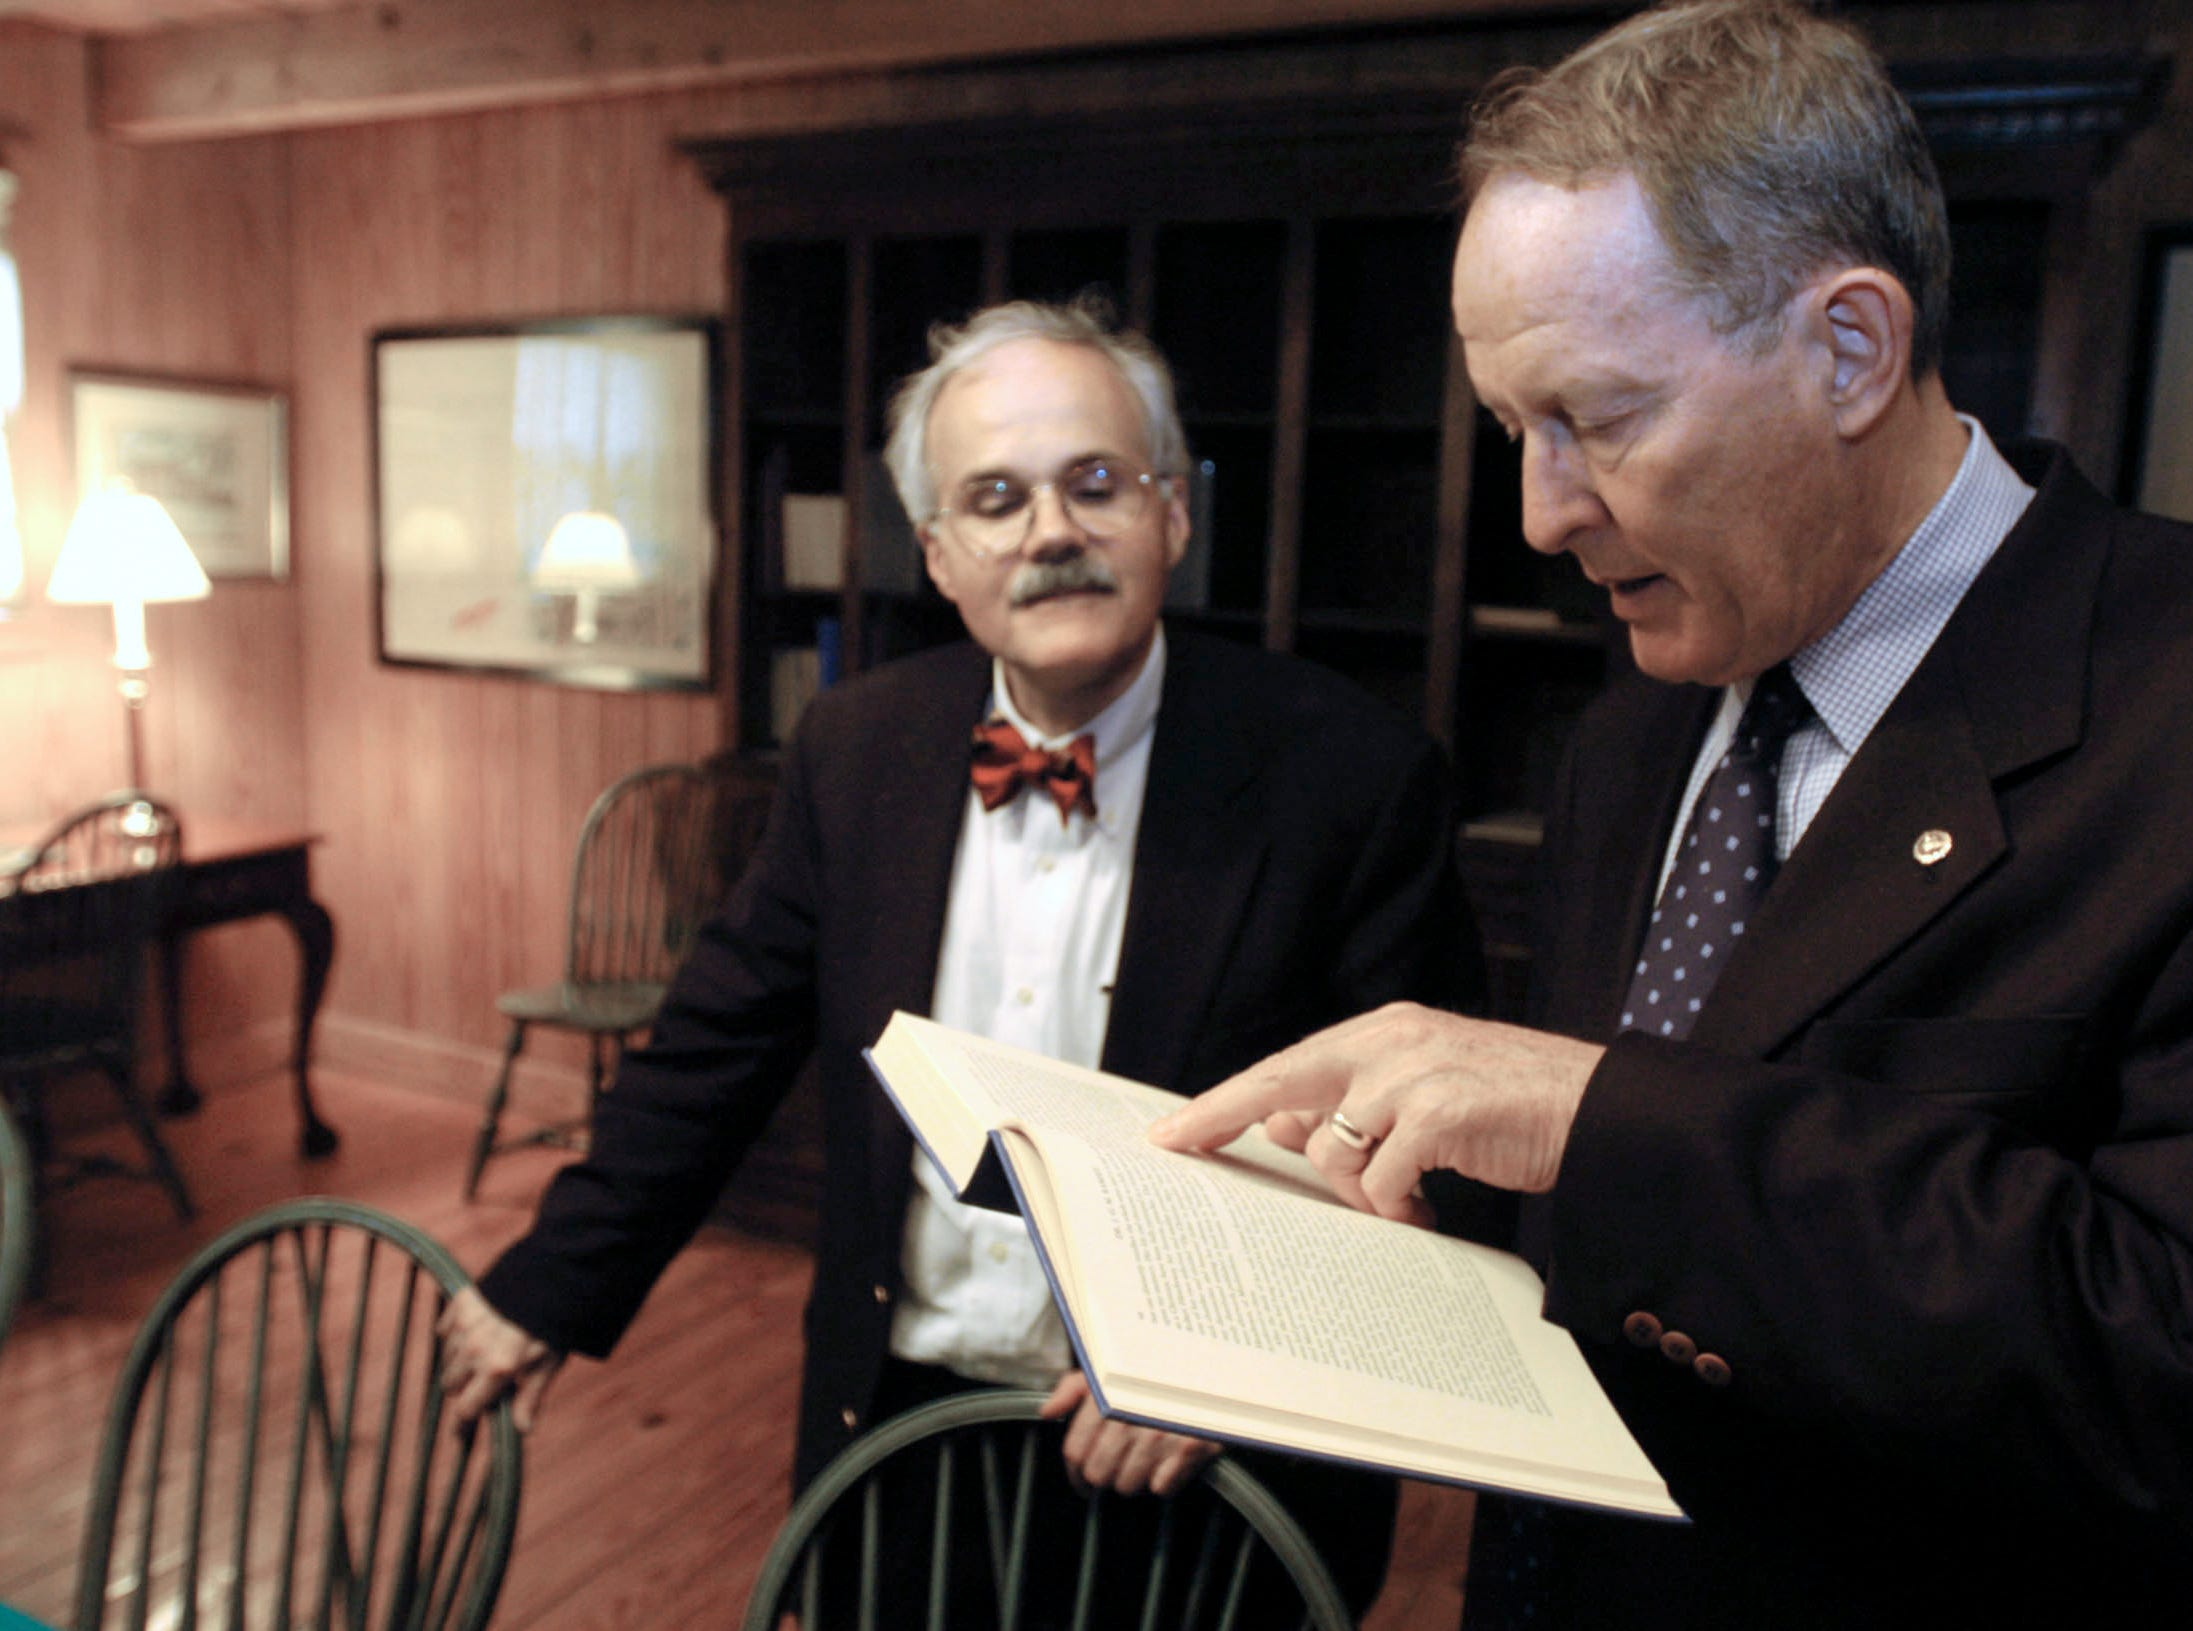 U.S. Sen. Lamar Alexander, R-Tenn., reads a passage from a book in the library named after his fourth-great-grandfather, John W. Alexander. The passage relates the story of his grandfather's visit to the Ramsey House in Knox County, built by his nephew, Francis Alexander Ramsey in 1797. Lamar Alexander, former Tennessee governor, also toured the stately home with David Duncan, left, president of the Ramsey House Plantation Board of Directors. Francis Ramsey brought his uncle to live on the plantation and built him a cabin, represented now by the library established in 1990 by Lamar Alexander to honor John Alexander.      5/24/2004